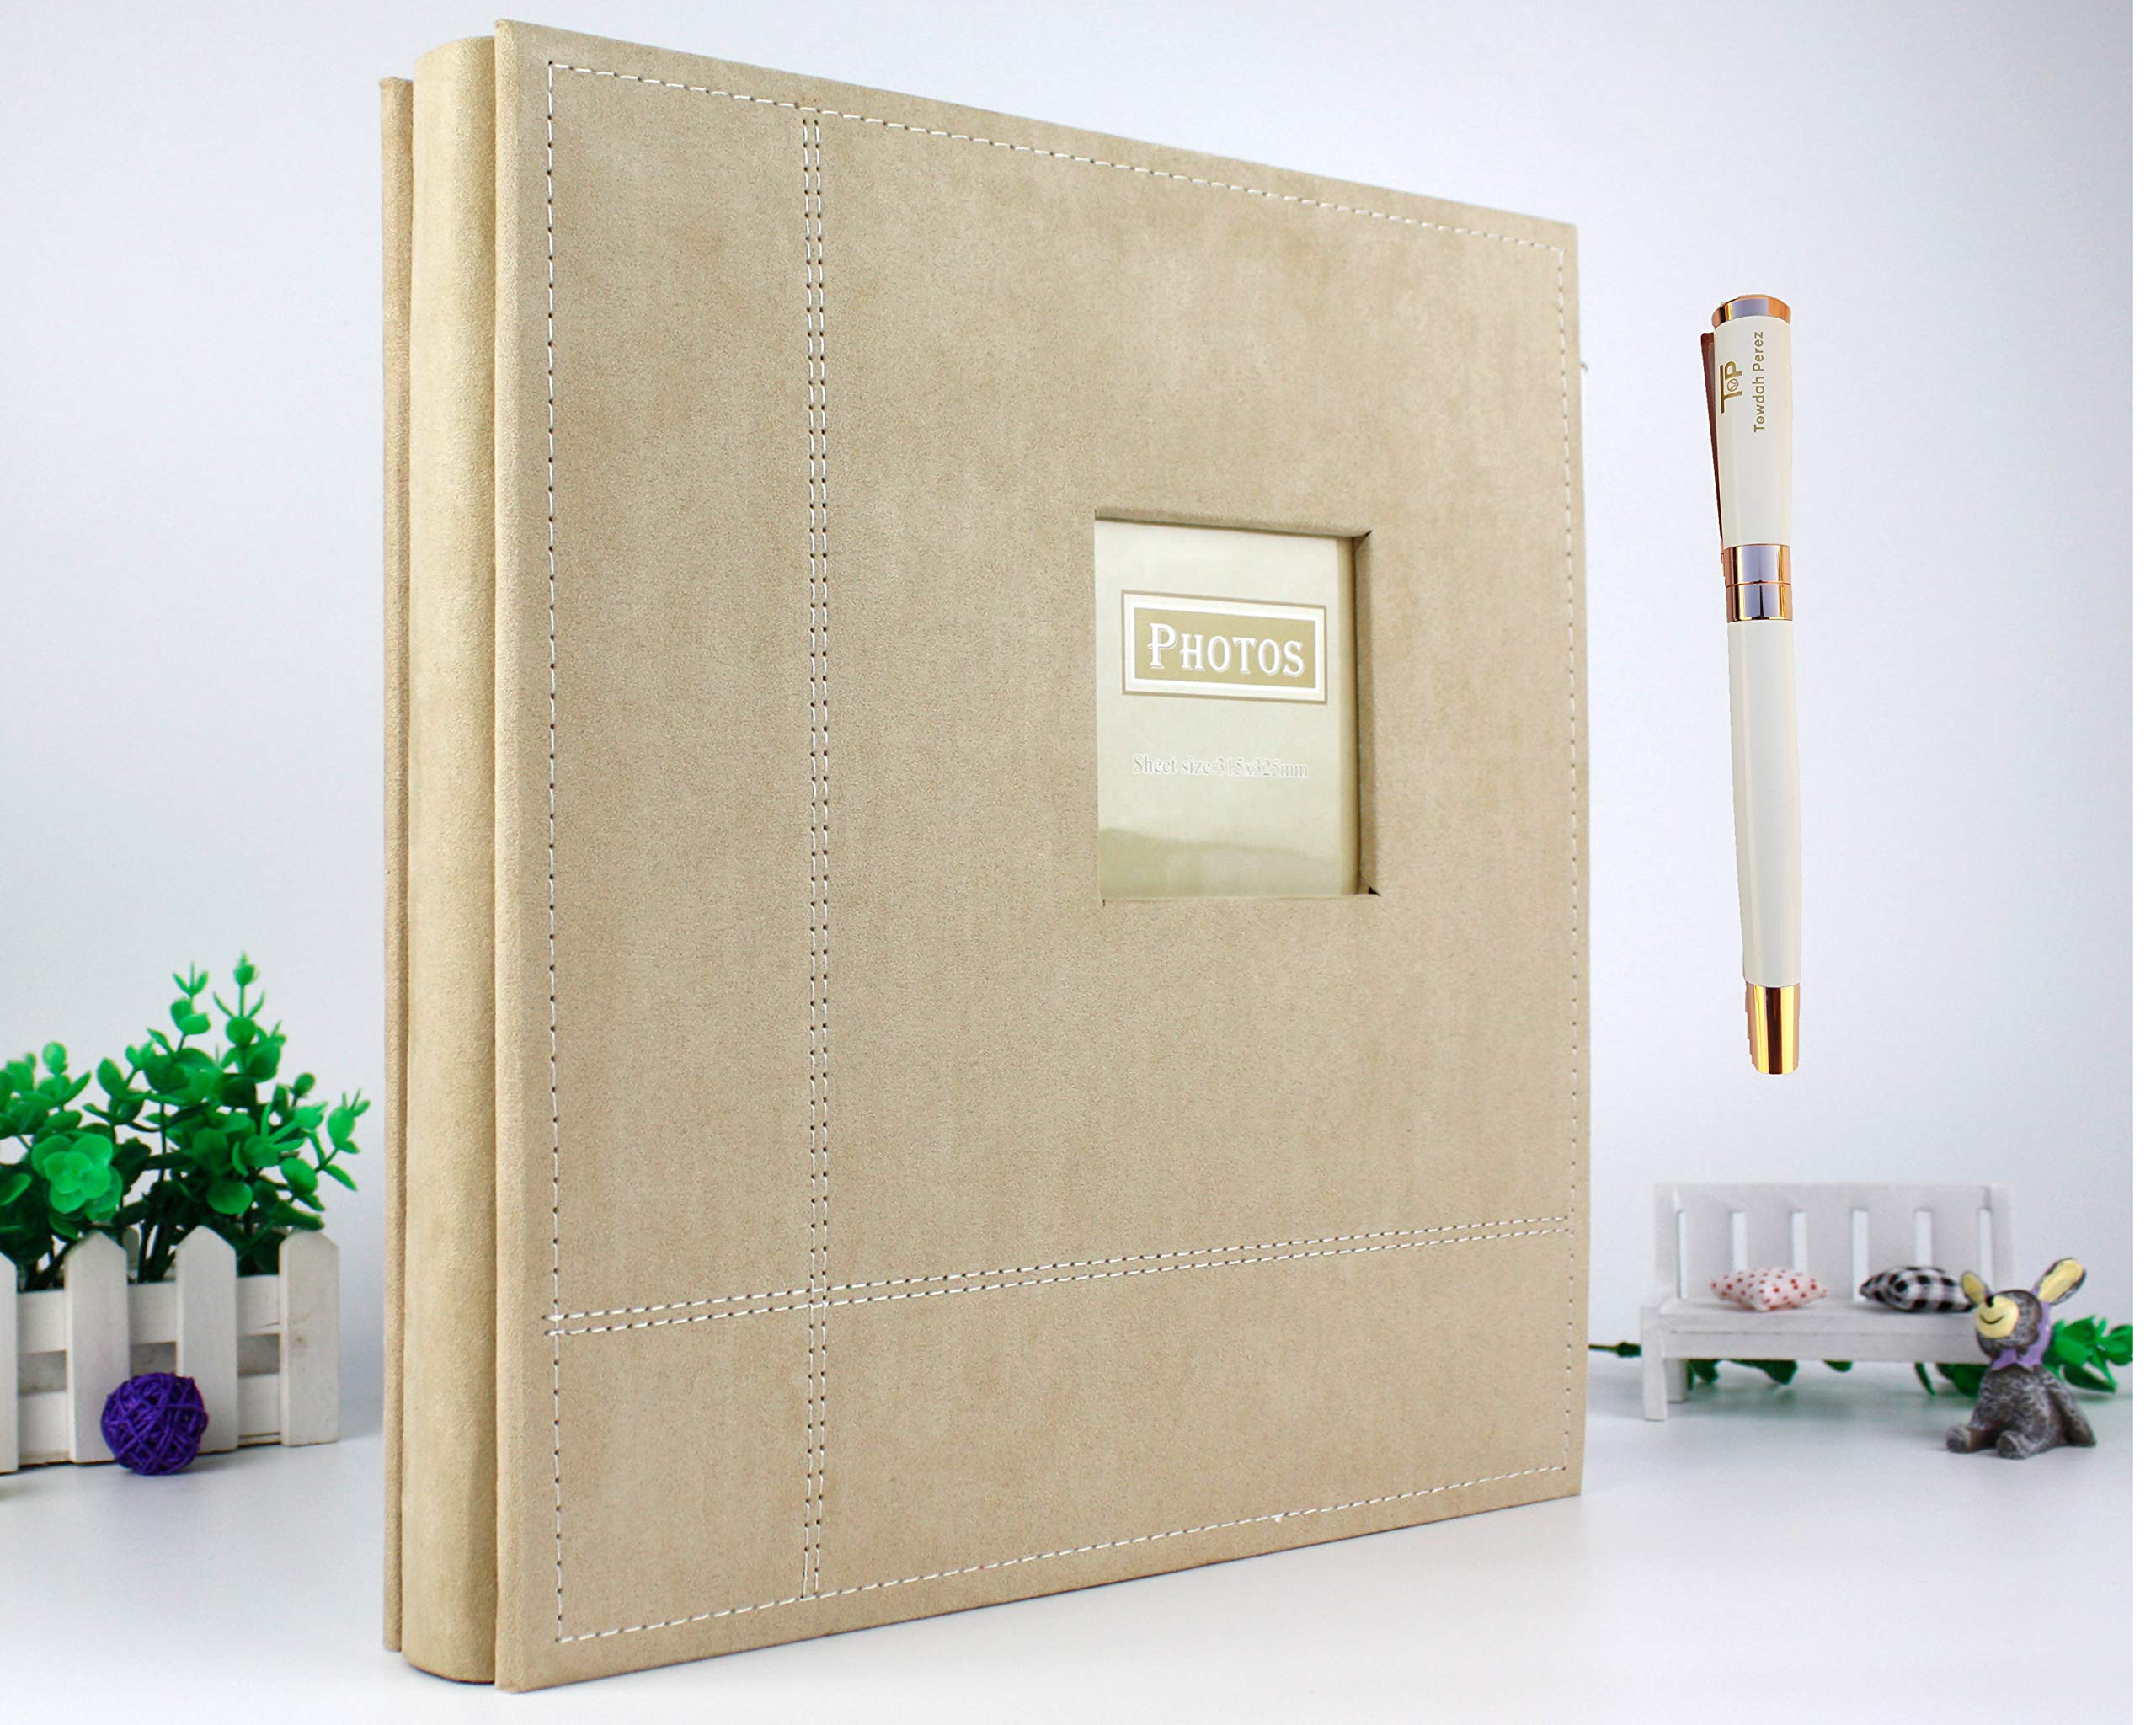 Towdah Perez Deluxe Large Magnetic Page Photo Album. 80 Pages, 3x5, 4x6, 5x7, 8x10 Photos with Gift Box, Luxury White/Gold Pen. Fabric Cover Wedding Family Album (Beige, Fabric) by Towdah Perez